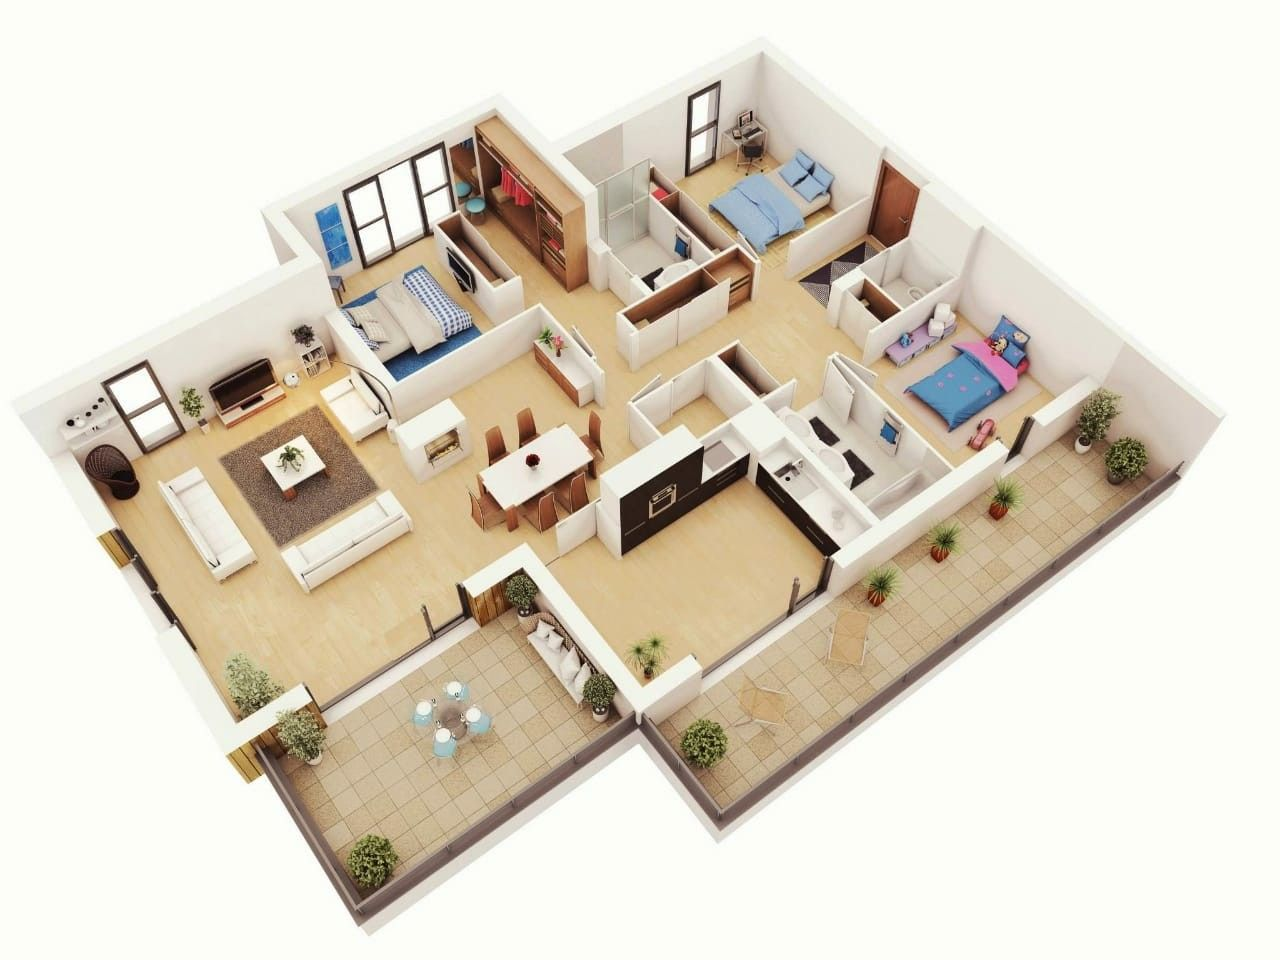 Pin By Chris Gibson On Our Home 3d House Plans Modern House Plan Bedroom House Plans